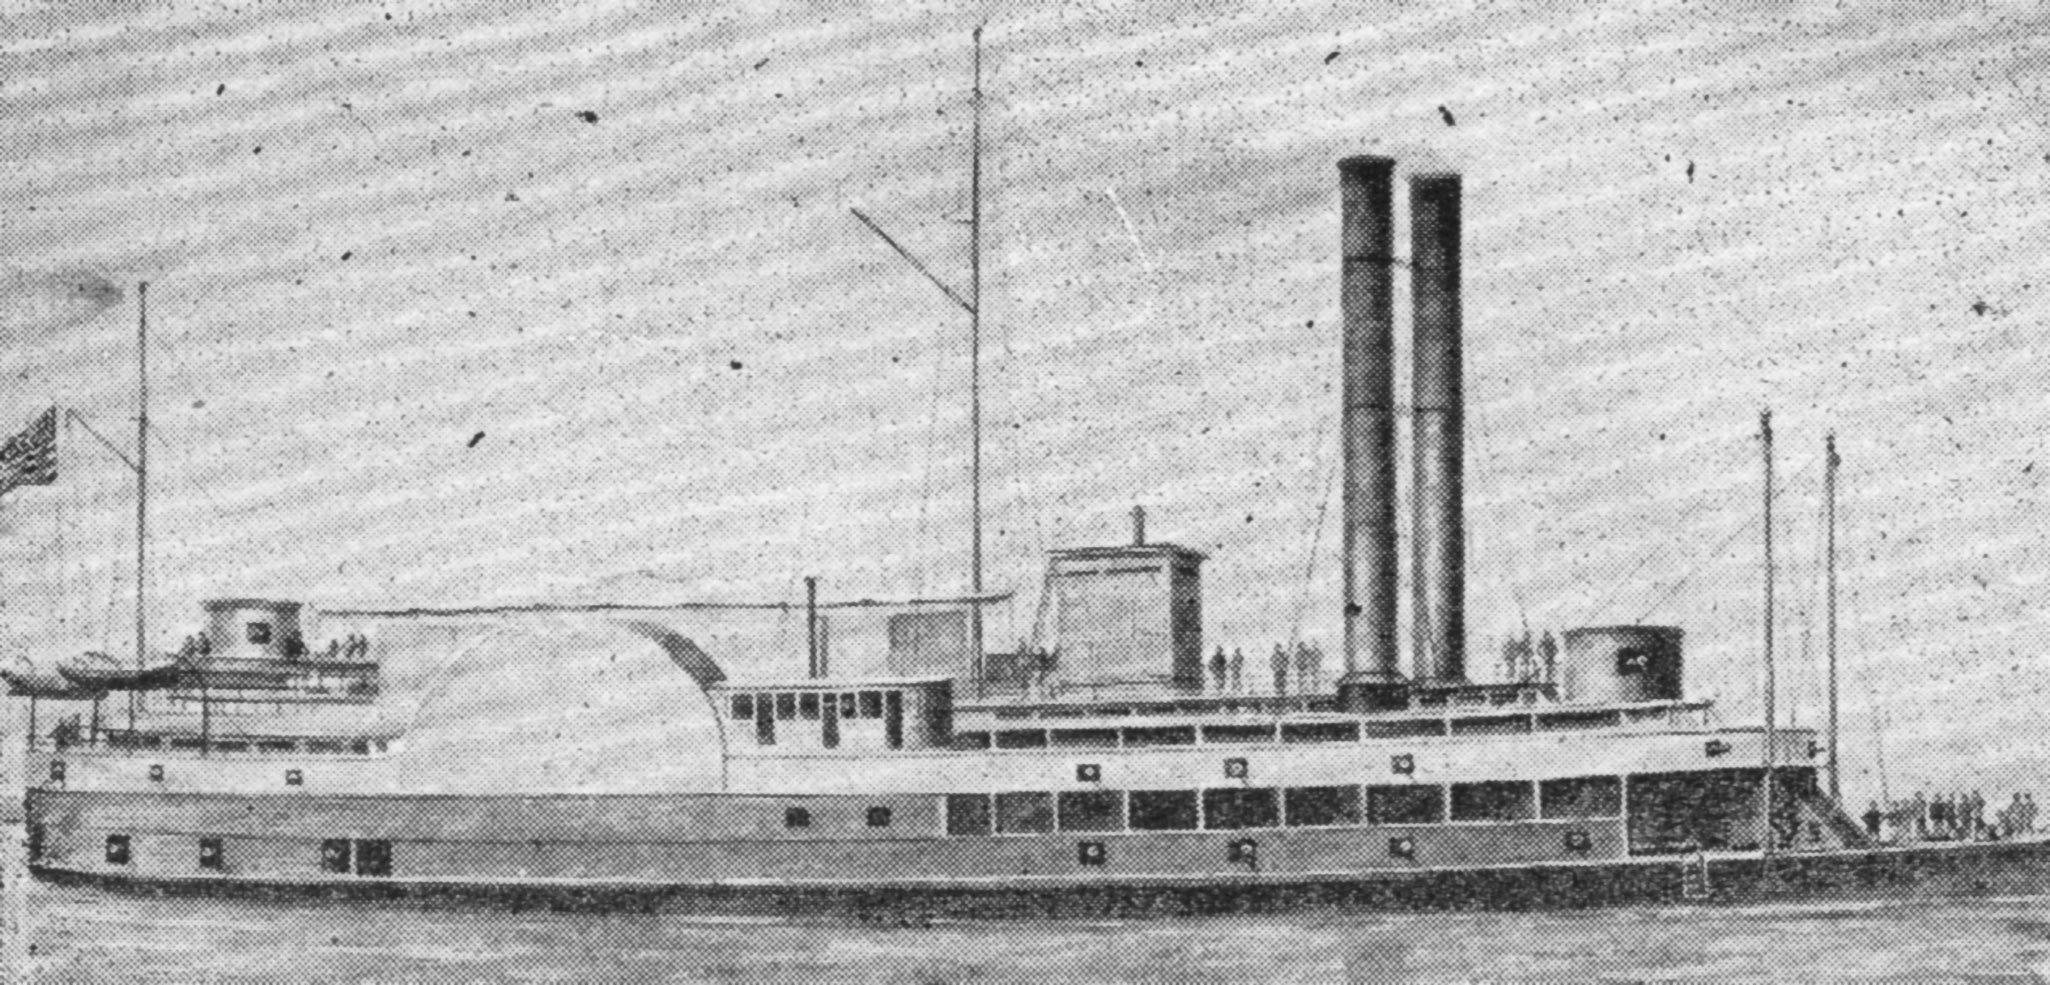 A rendering of the packet Louisville after conversion into a gunboat. (Keith Norrington collection)